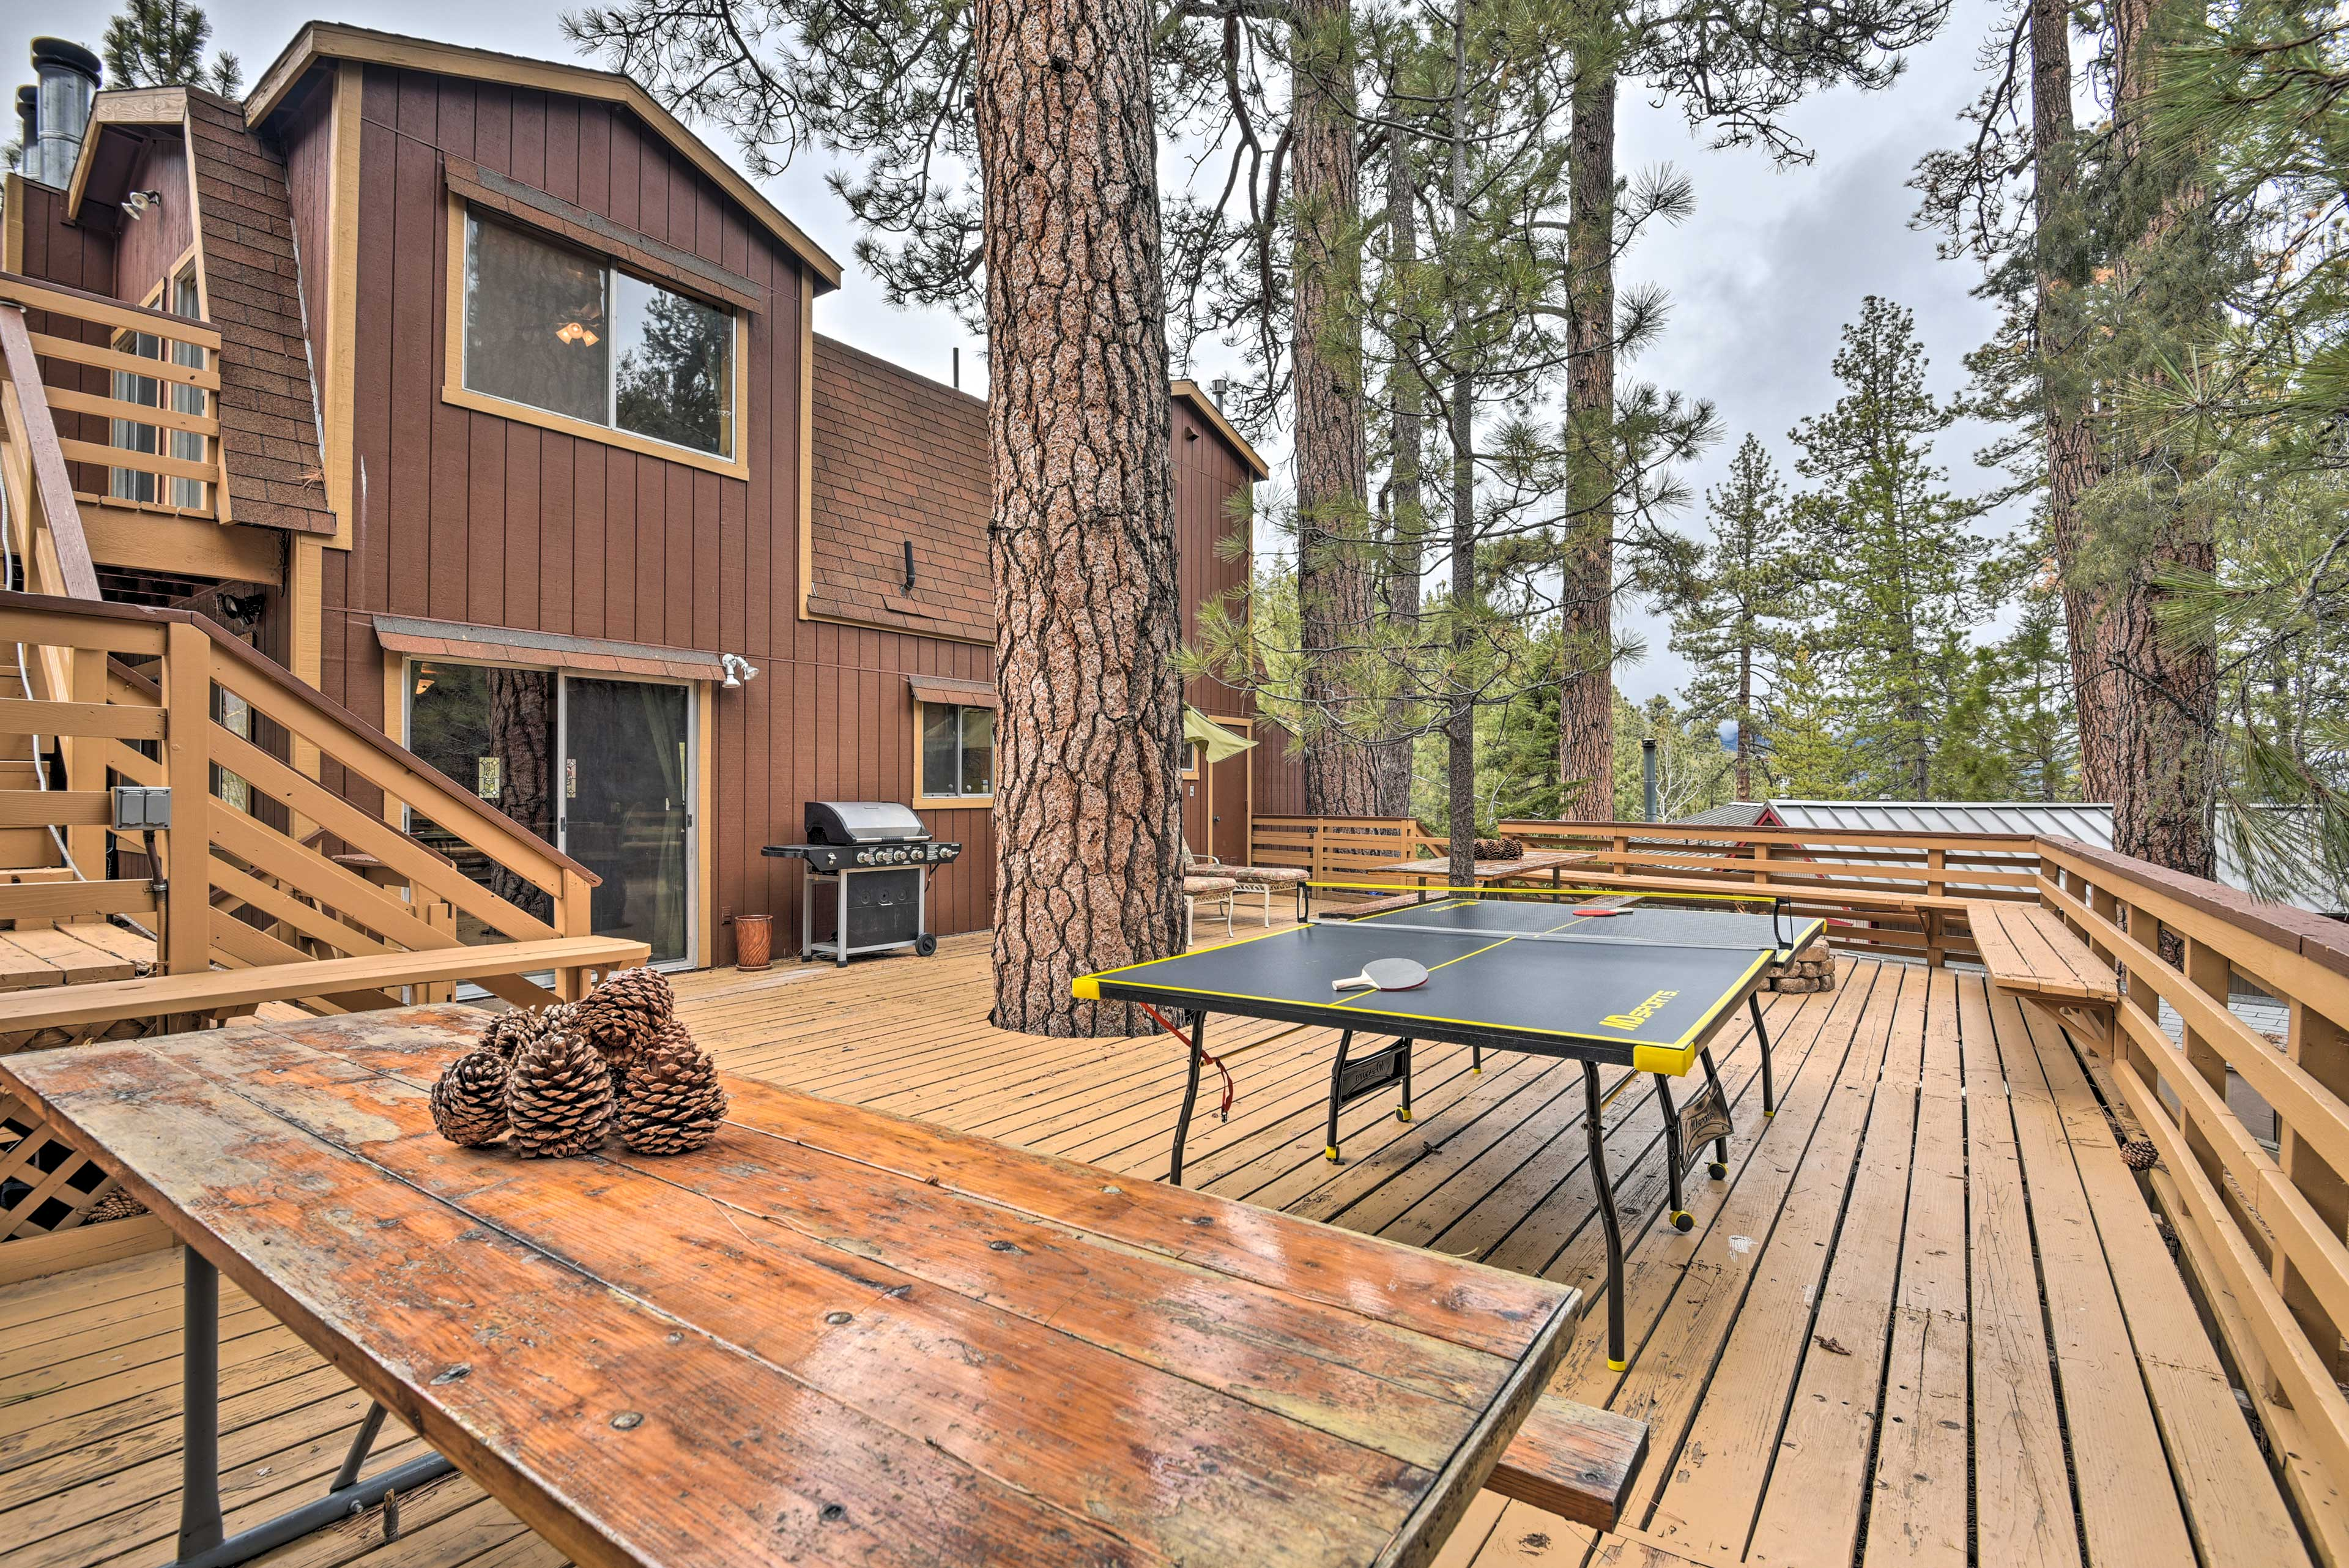 Book a trip to this lavish 4-bedroom, 2-bathroom vacation rental cottage.